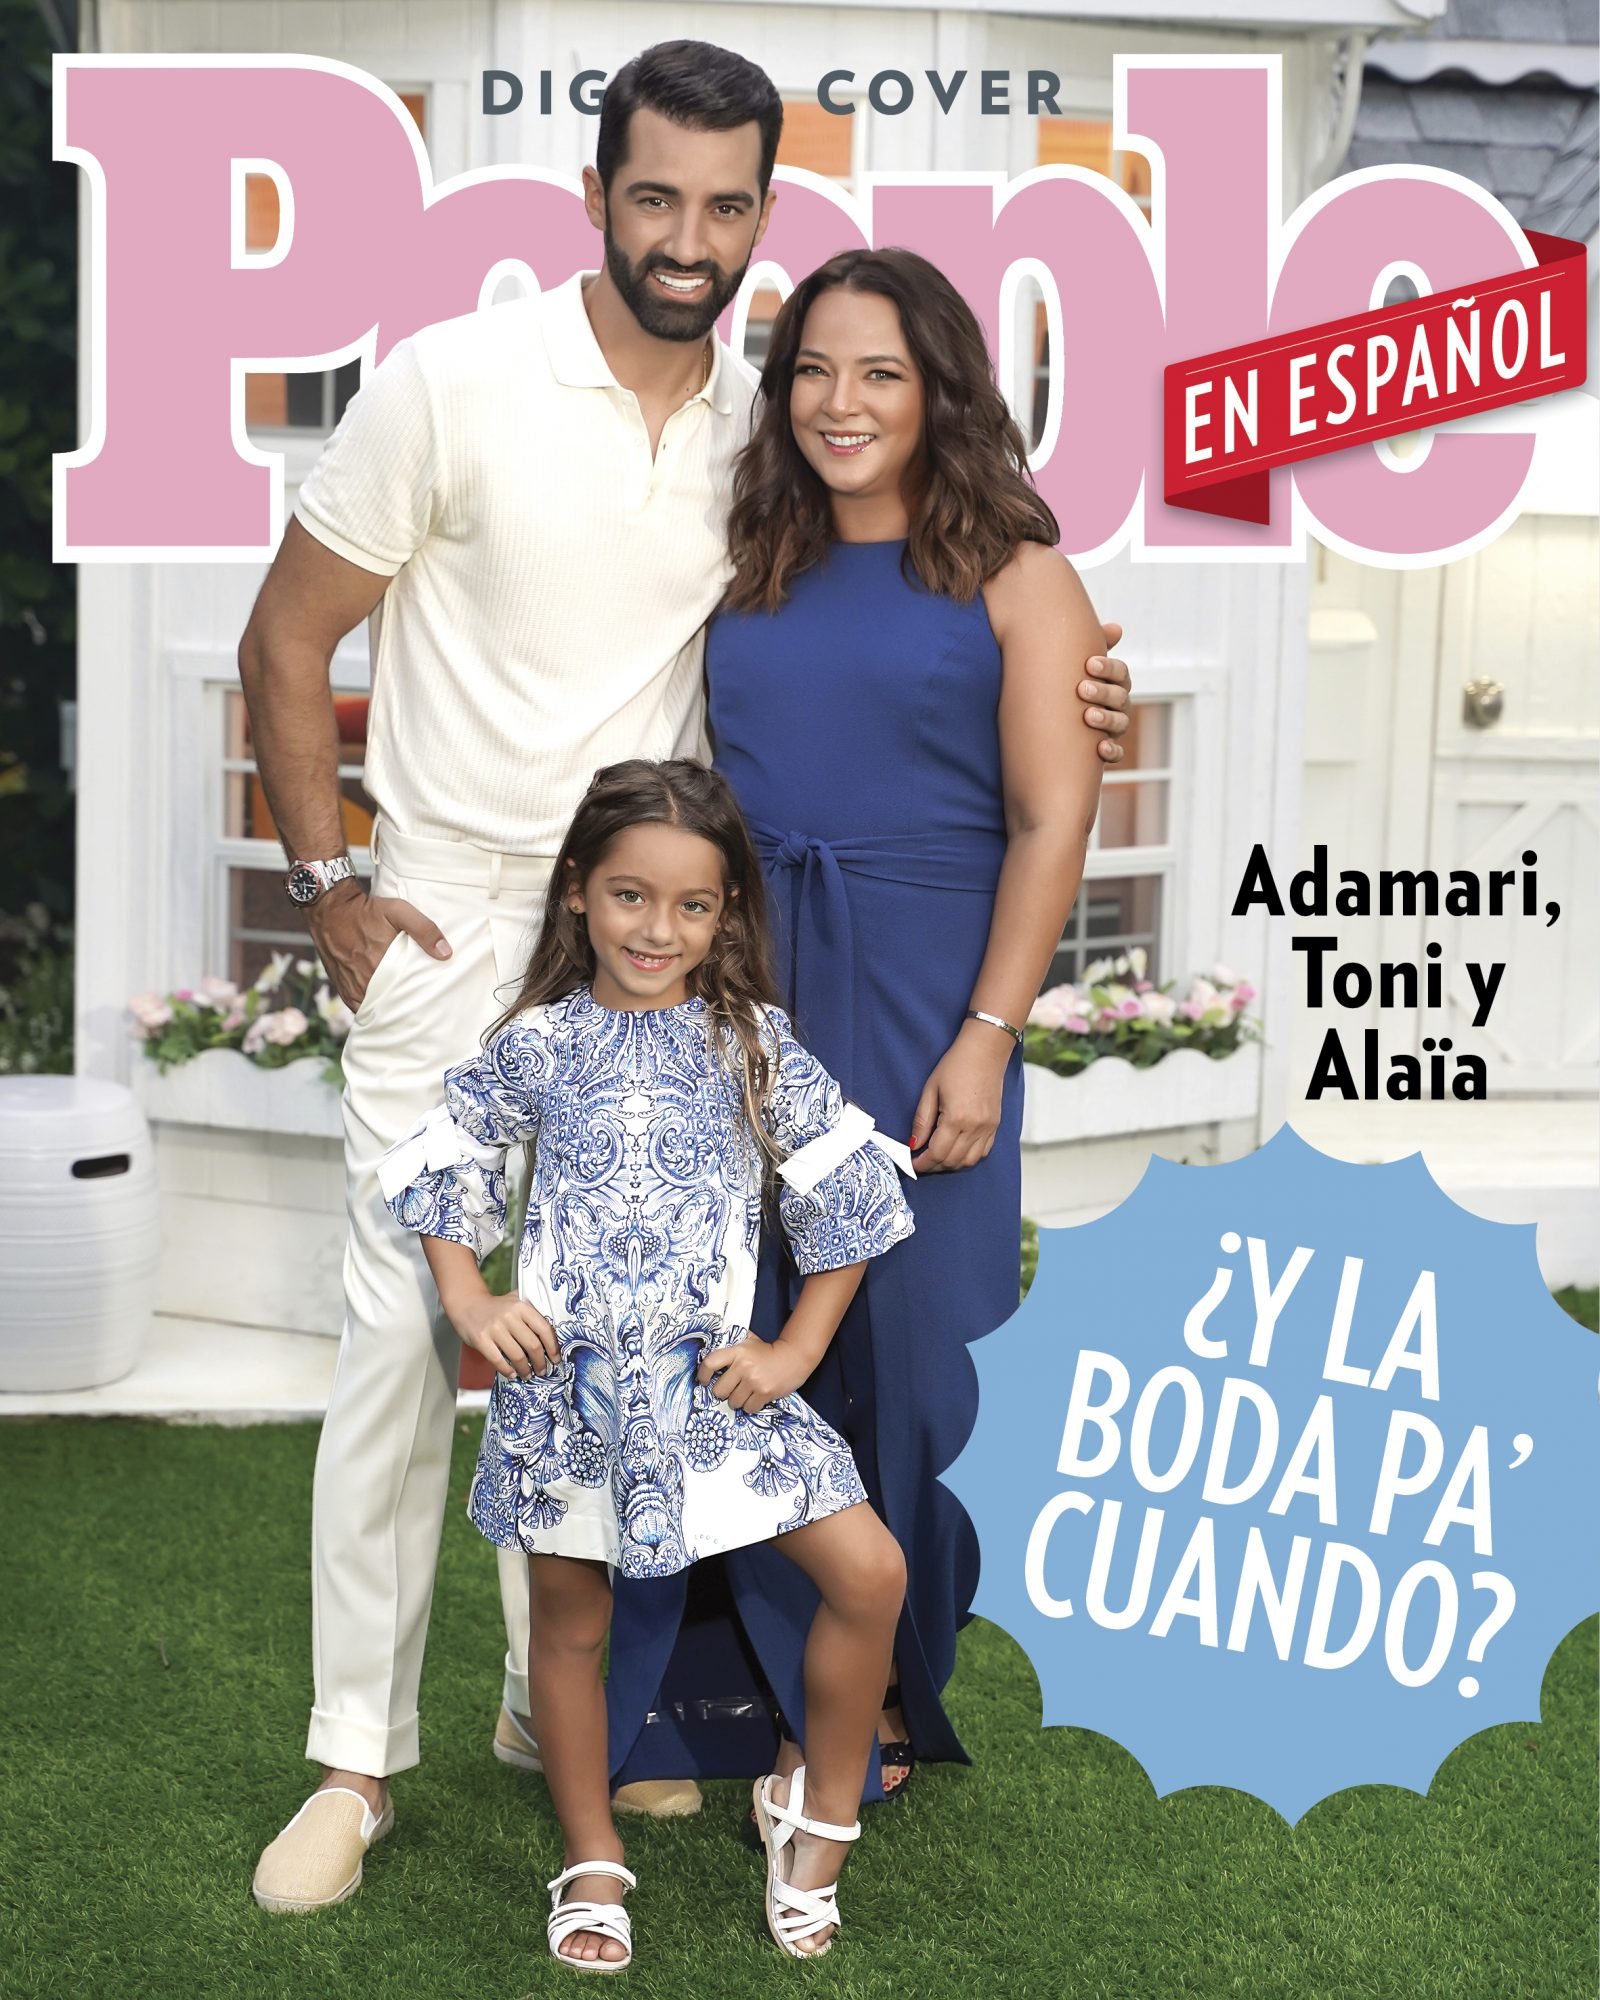 Adamari Lopez, Toni, Alaia (DO NOT REUSE)